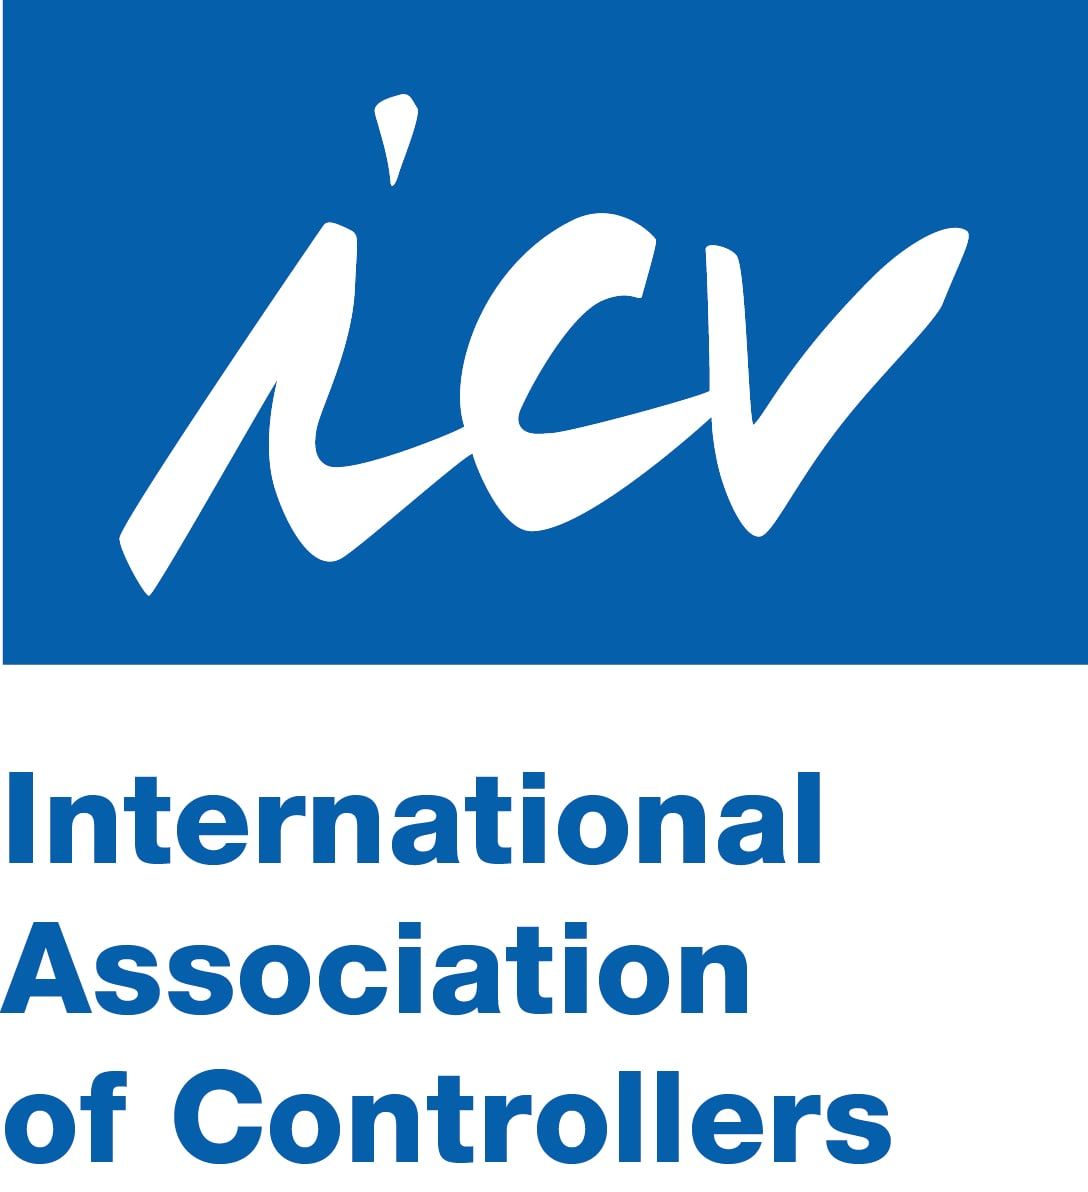 logo icv international association of controllers